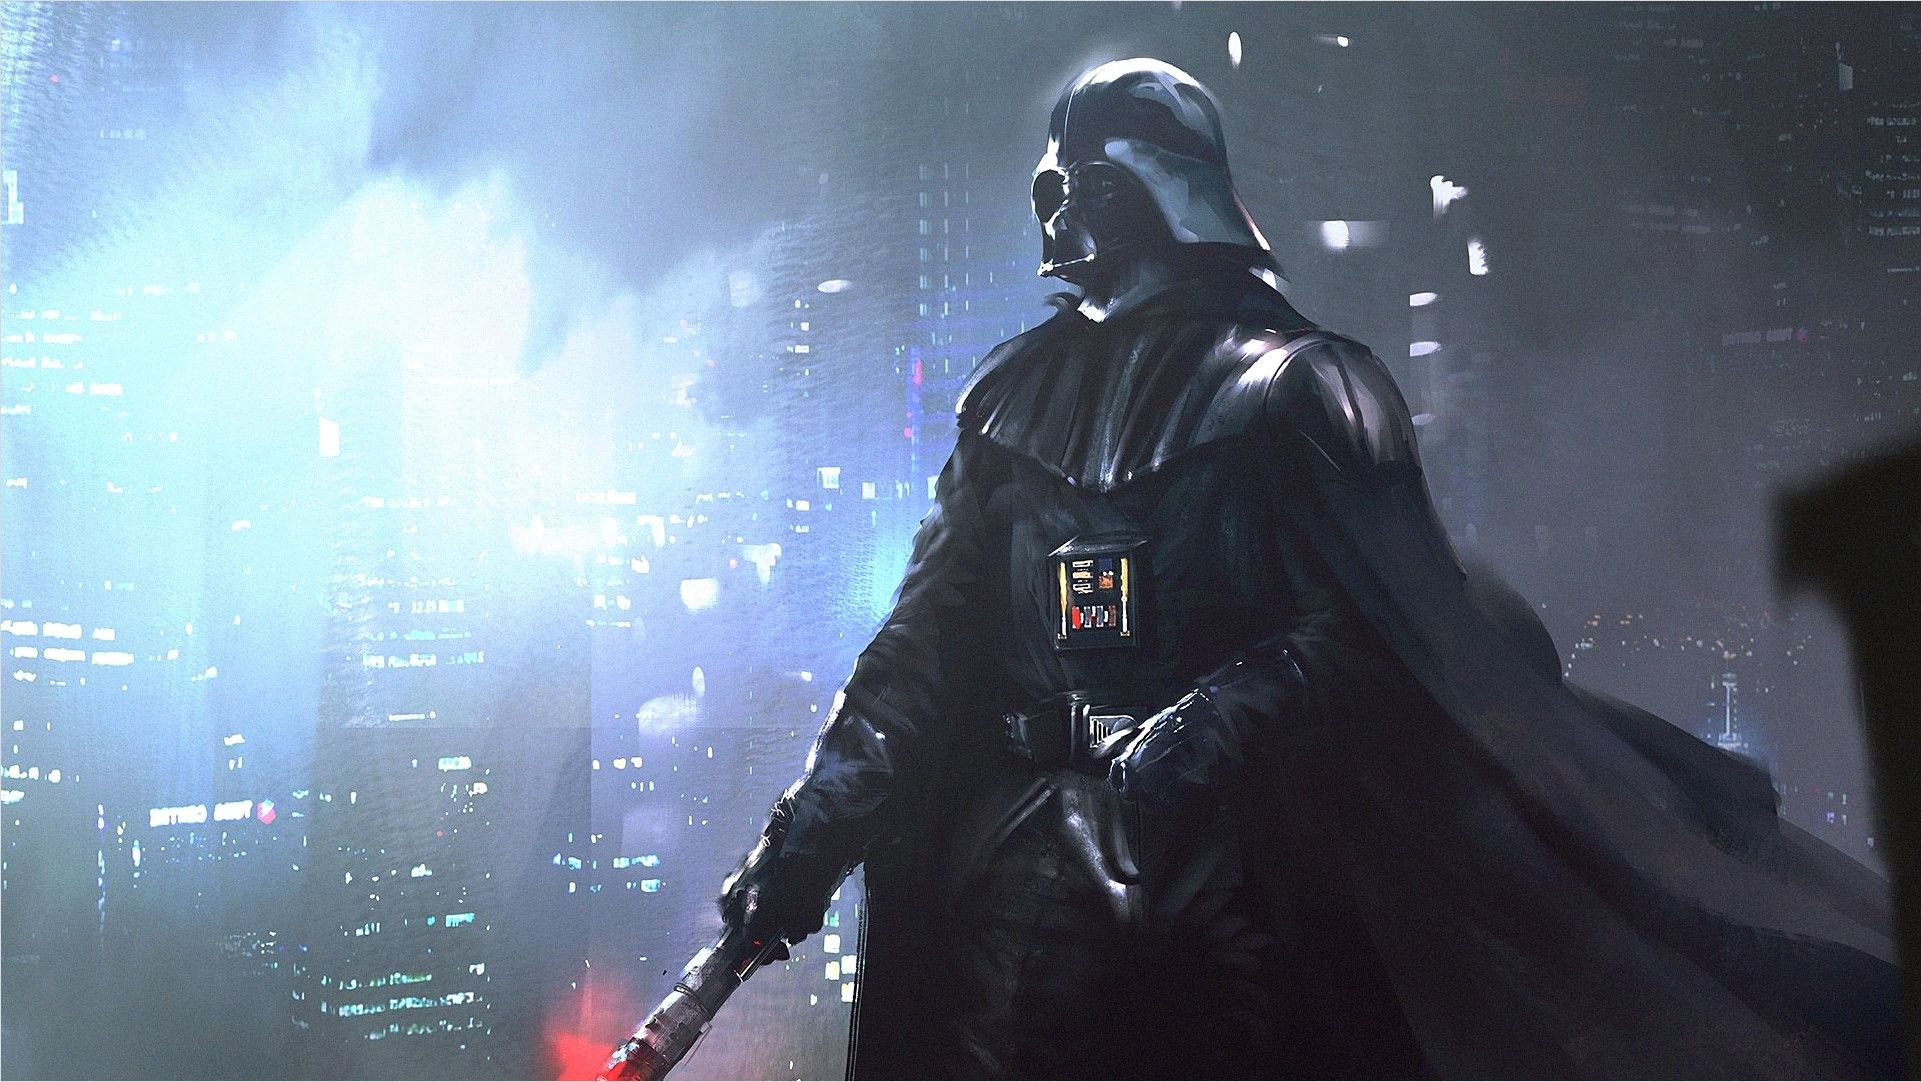 21 9 Darth Vader 4k Wallpaper In 2020 Darth Vader Wallpaper Darth Vader 4k Wallpaper Darth Vader